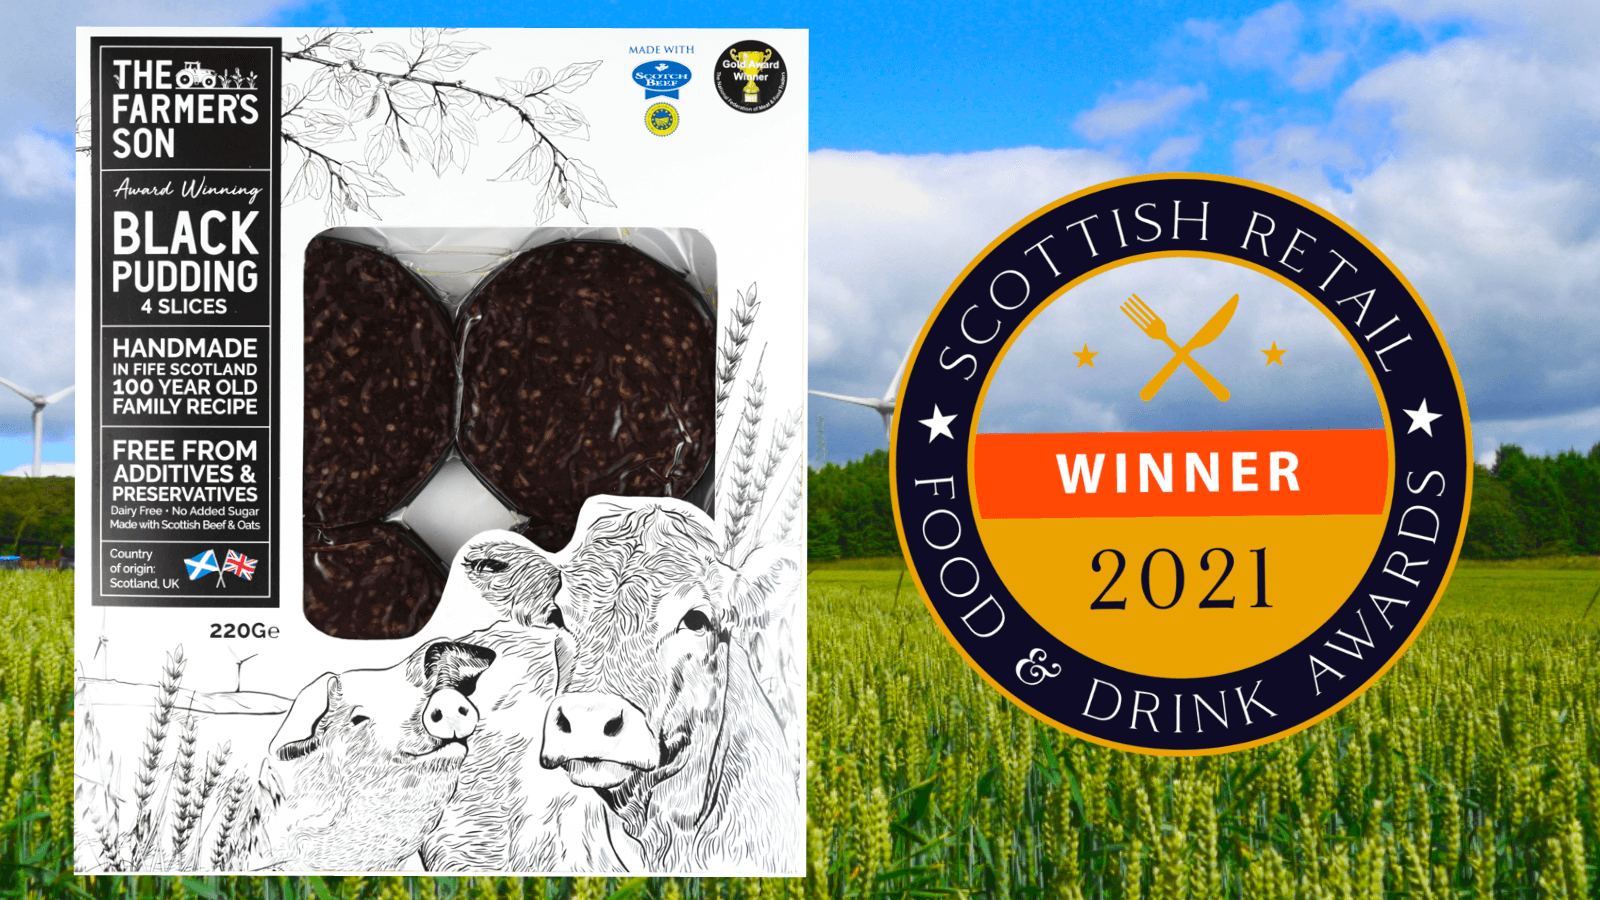 The Farmer's Son Black Pudding Given A Stamp of Approval At Scottish Retail Awards